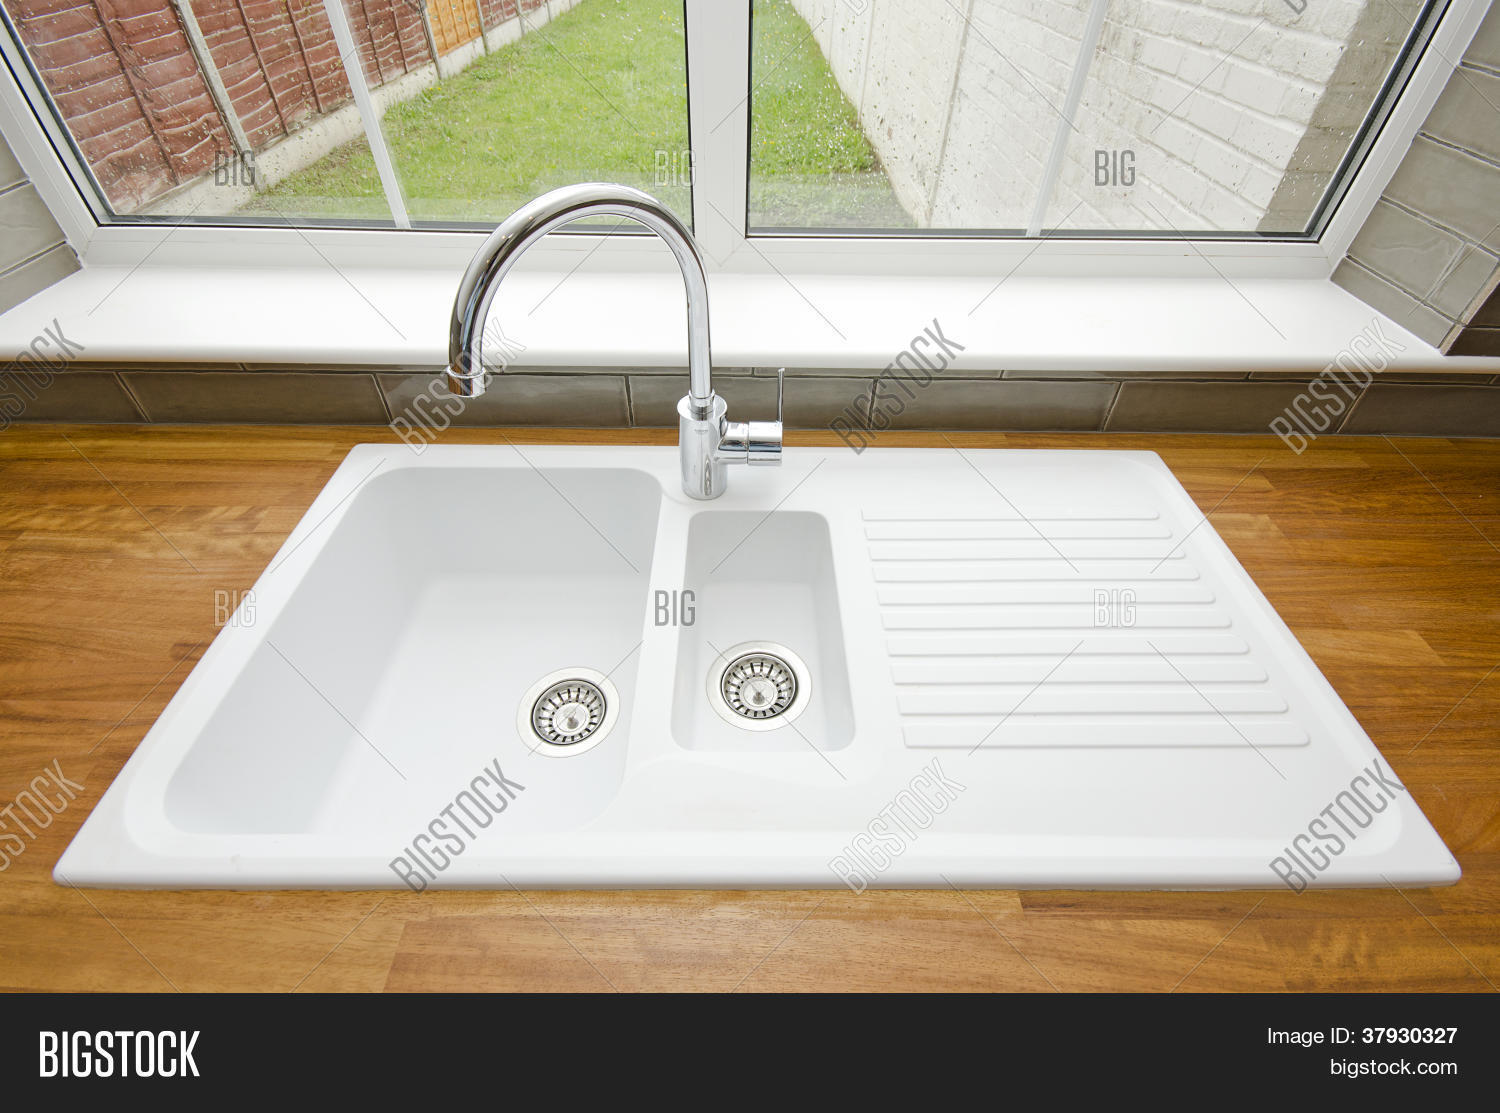 White Ceramic Kitchen Sink Solid Image & Photo | Bigstock